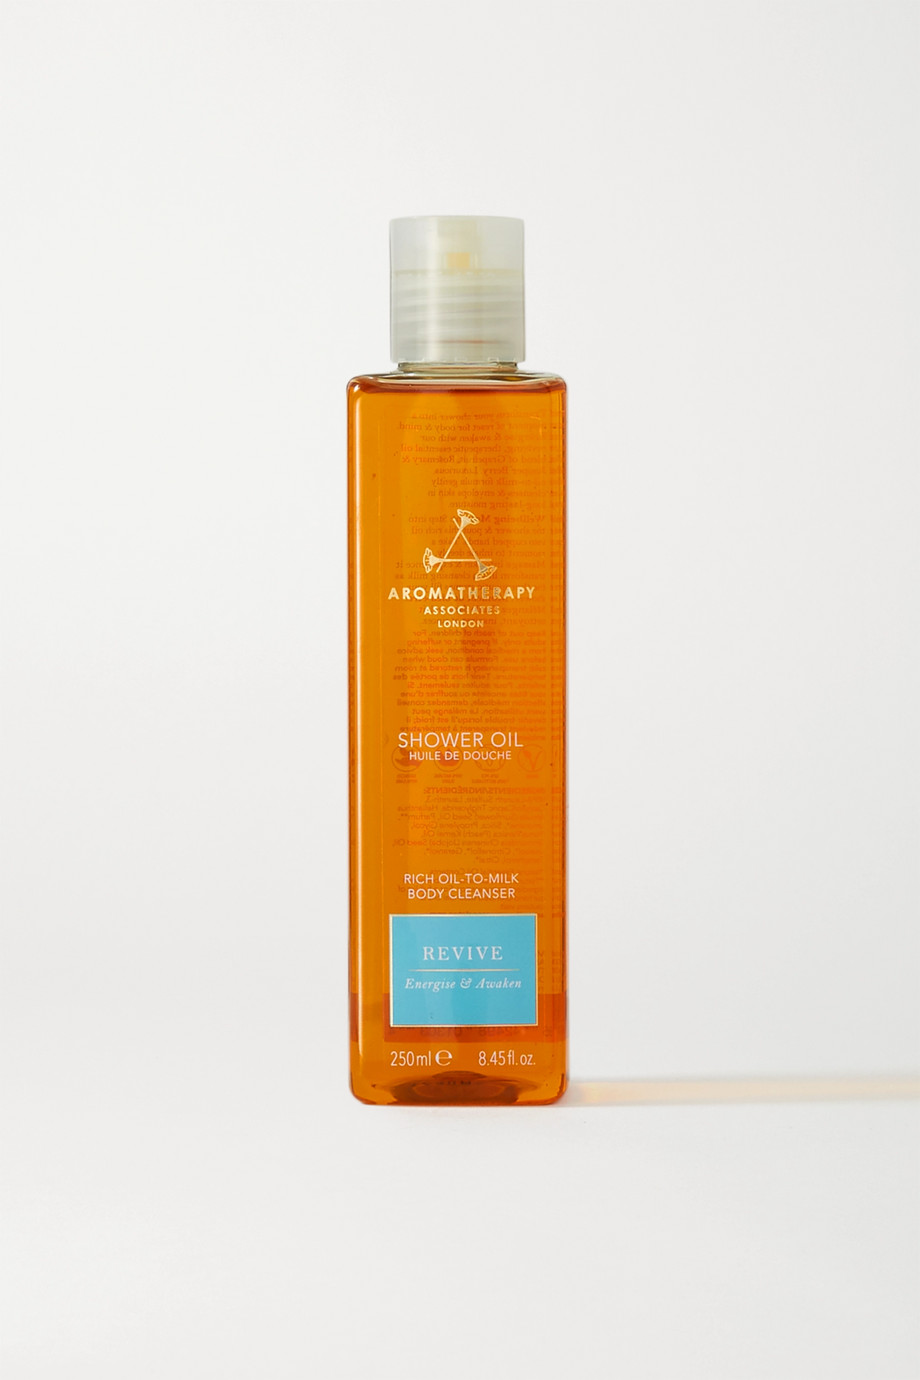 Aromatherapy Associates Revive Shower Oil, 250ml